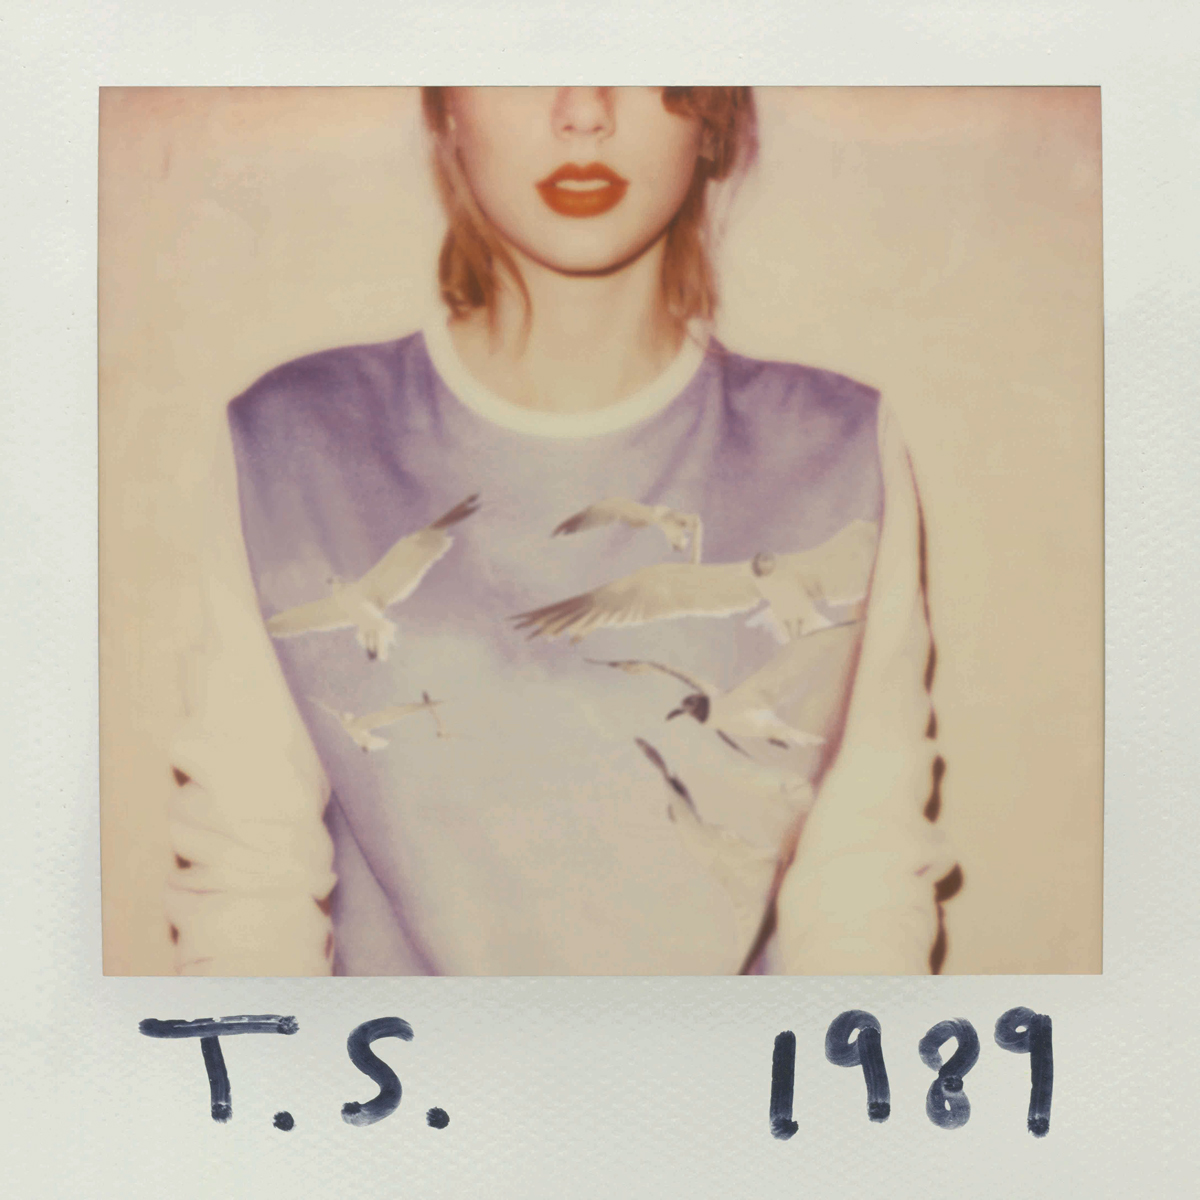 holding taylor swift album review - Taylor Swift - 1989 (Album Review)